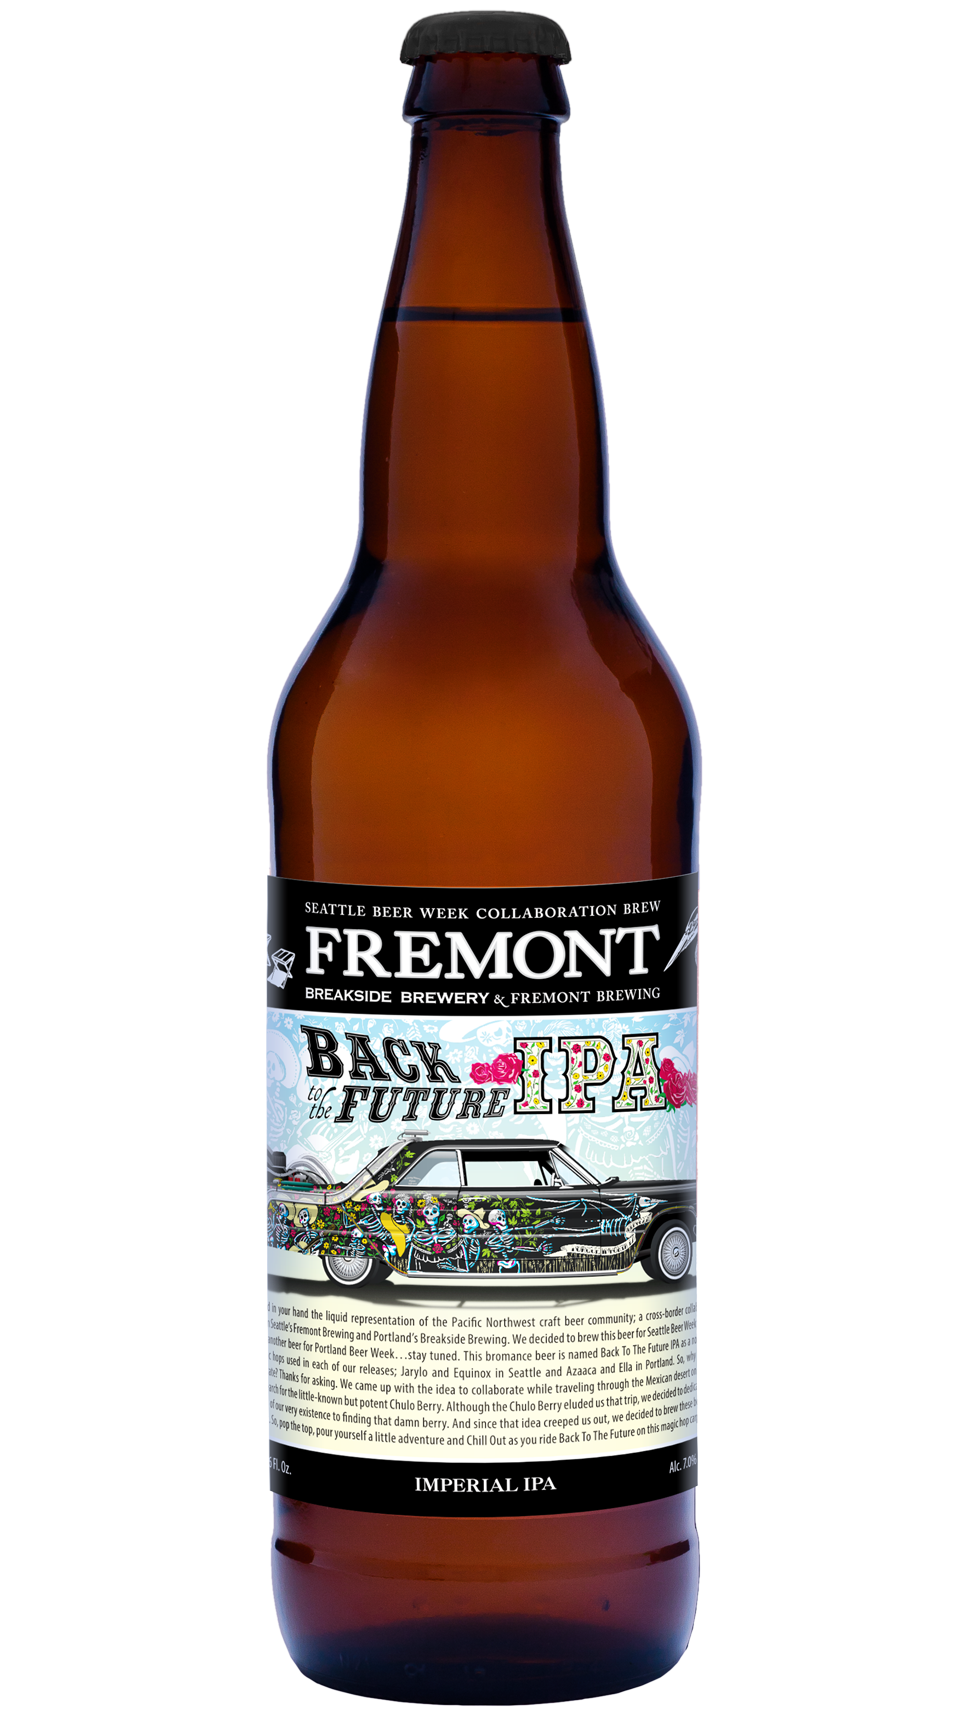 Fremont-Back-to-the-Future-IPA